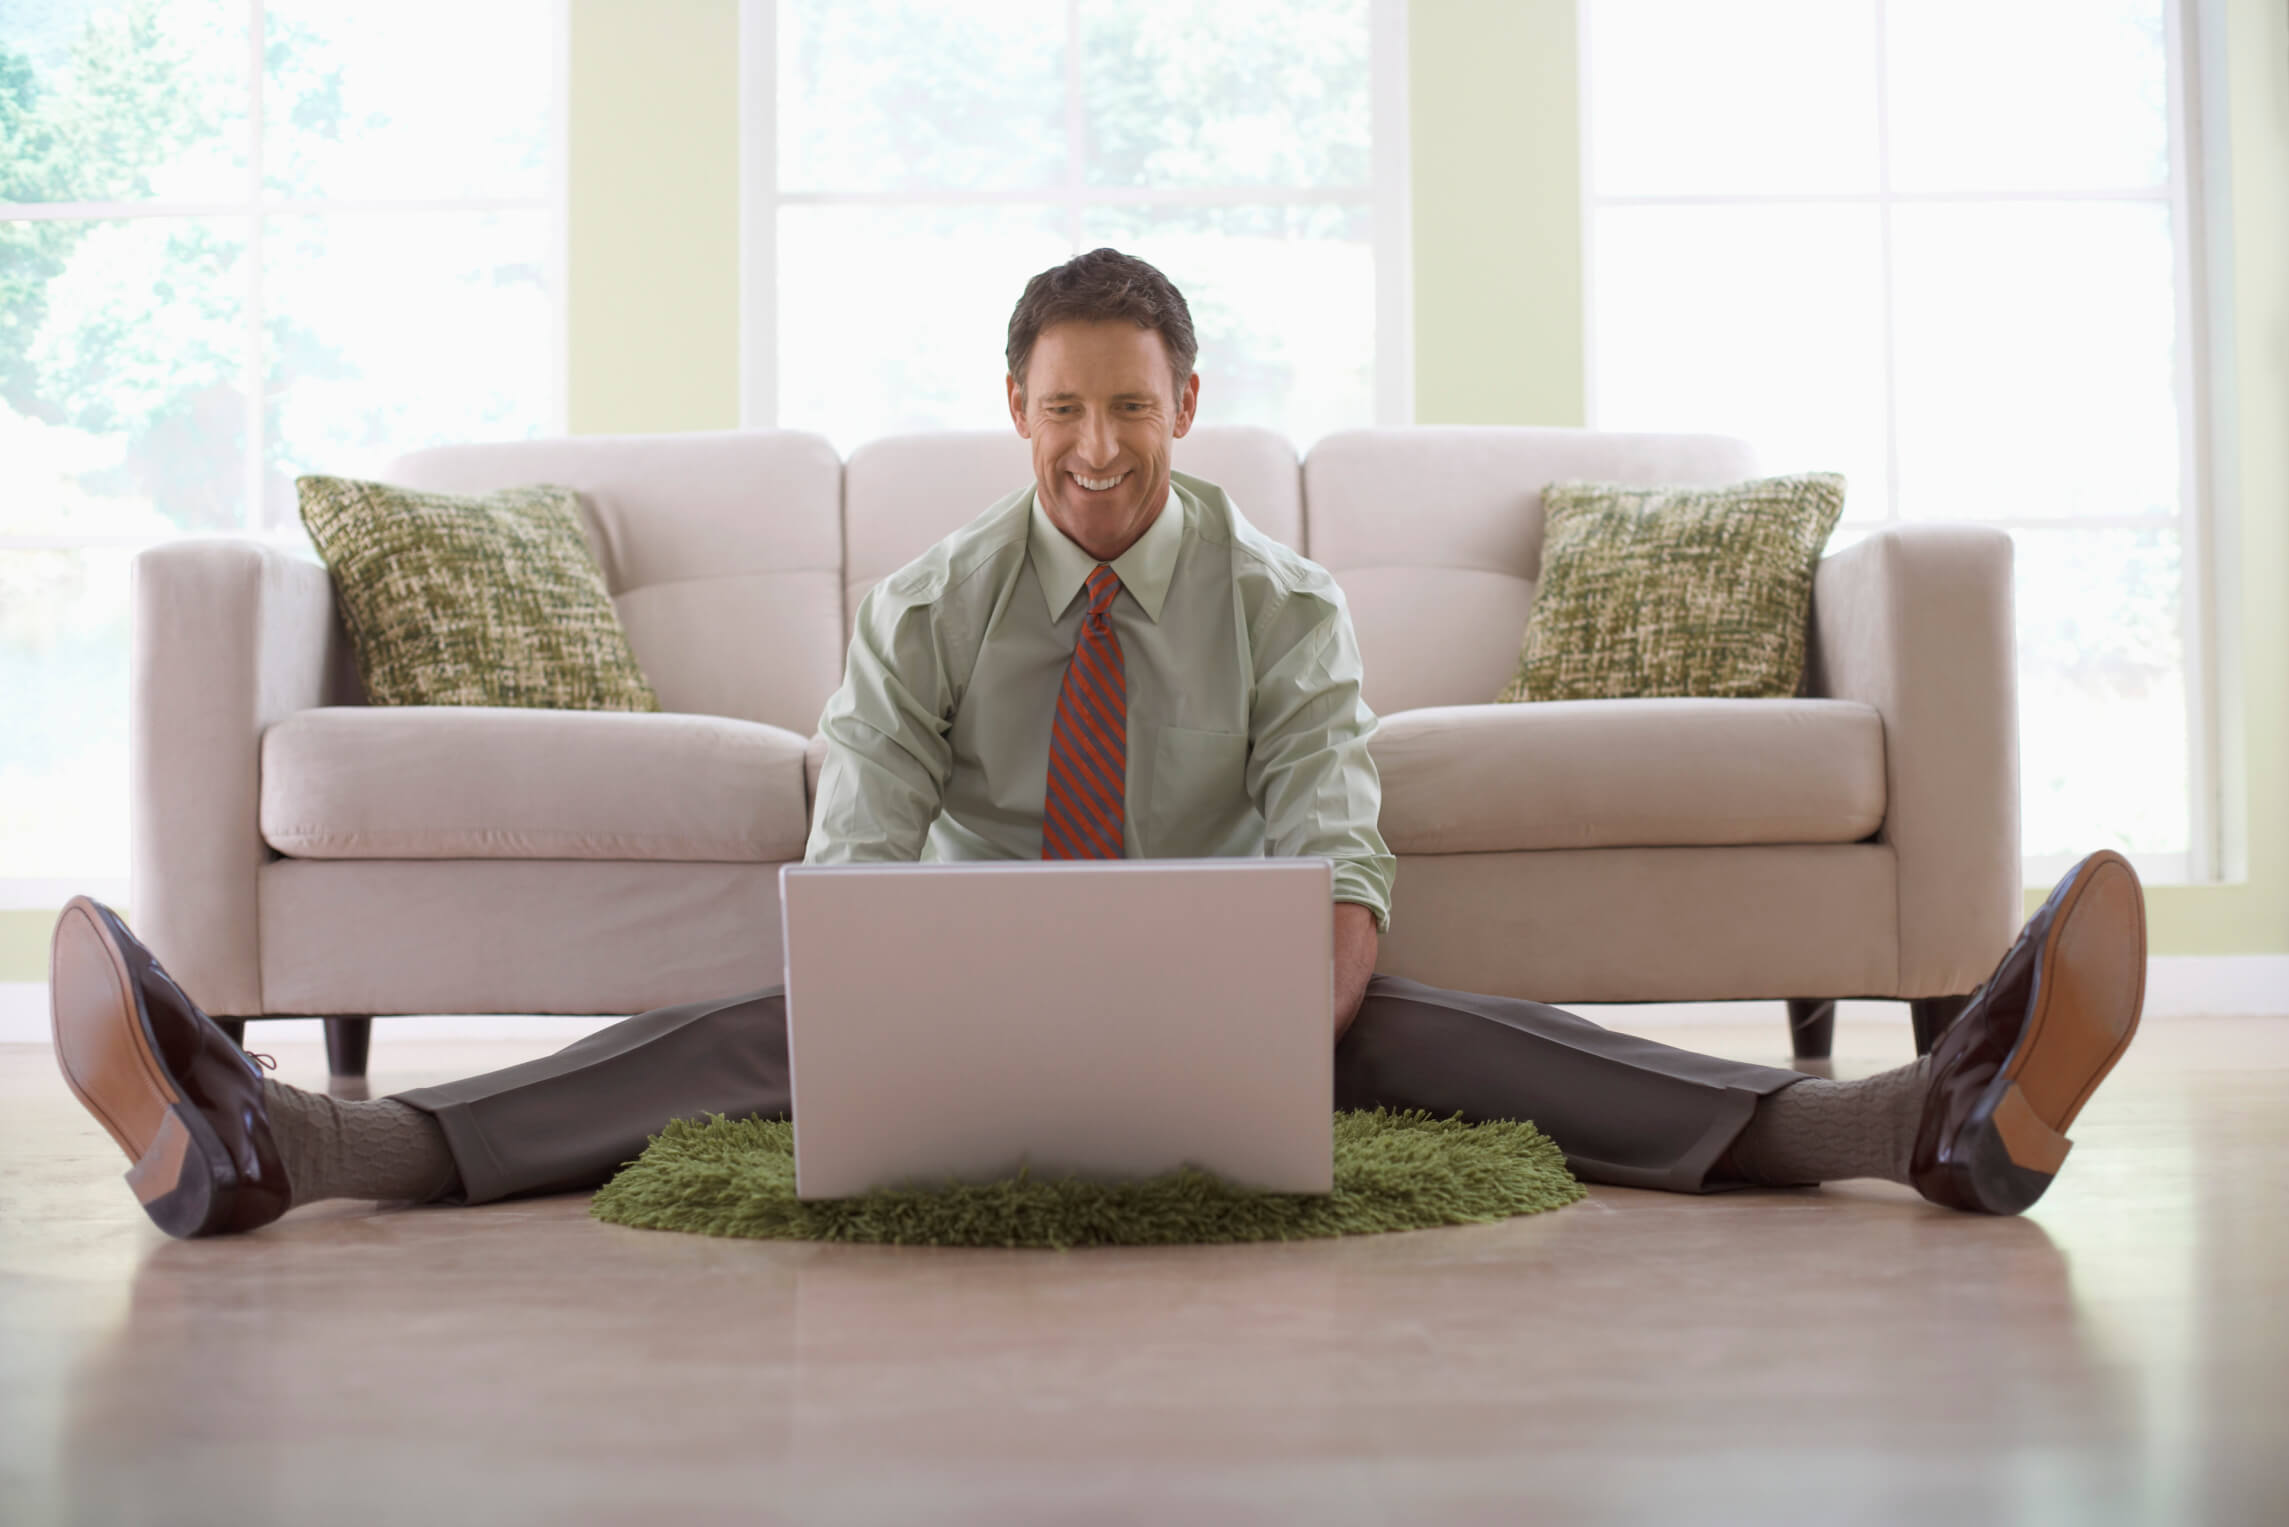 Working from home - flexible working